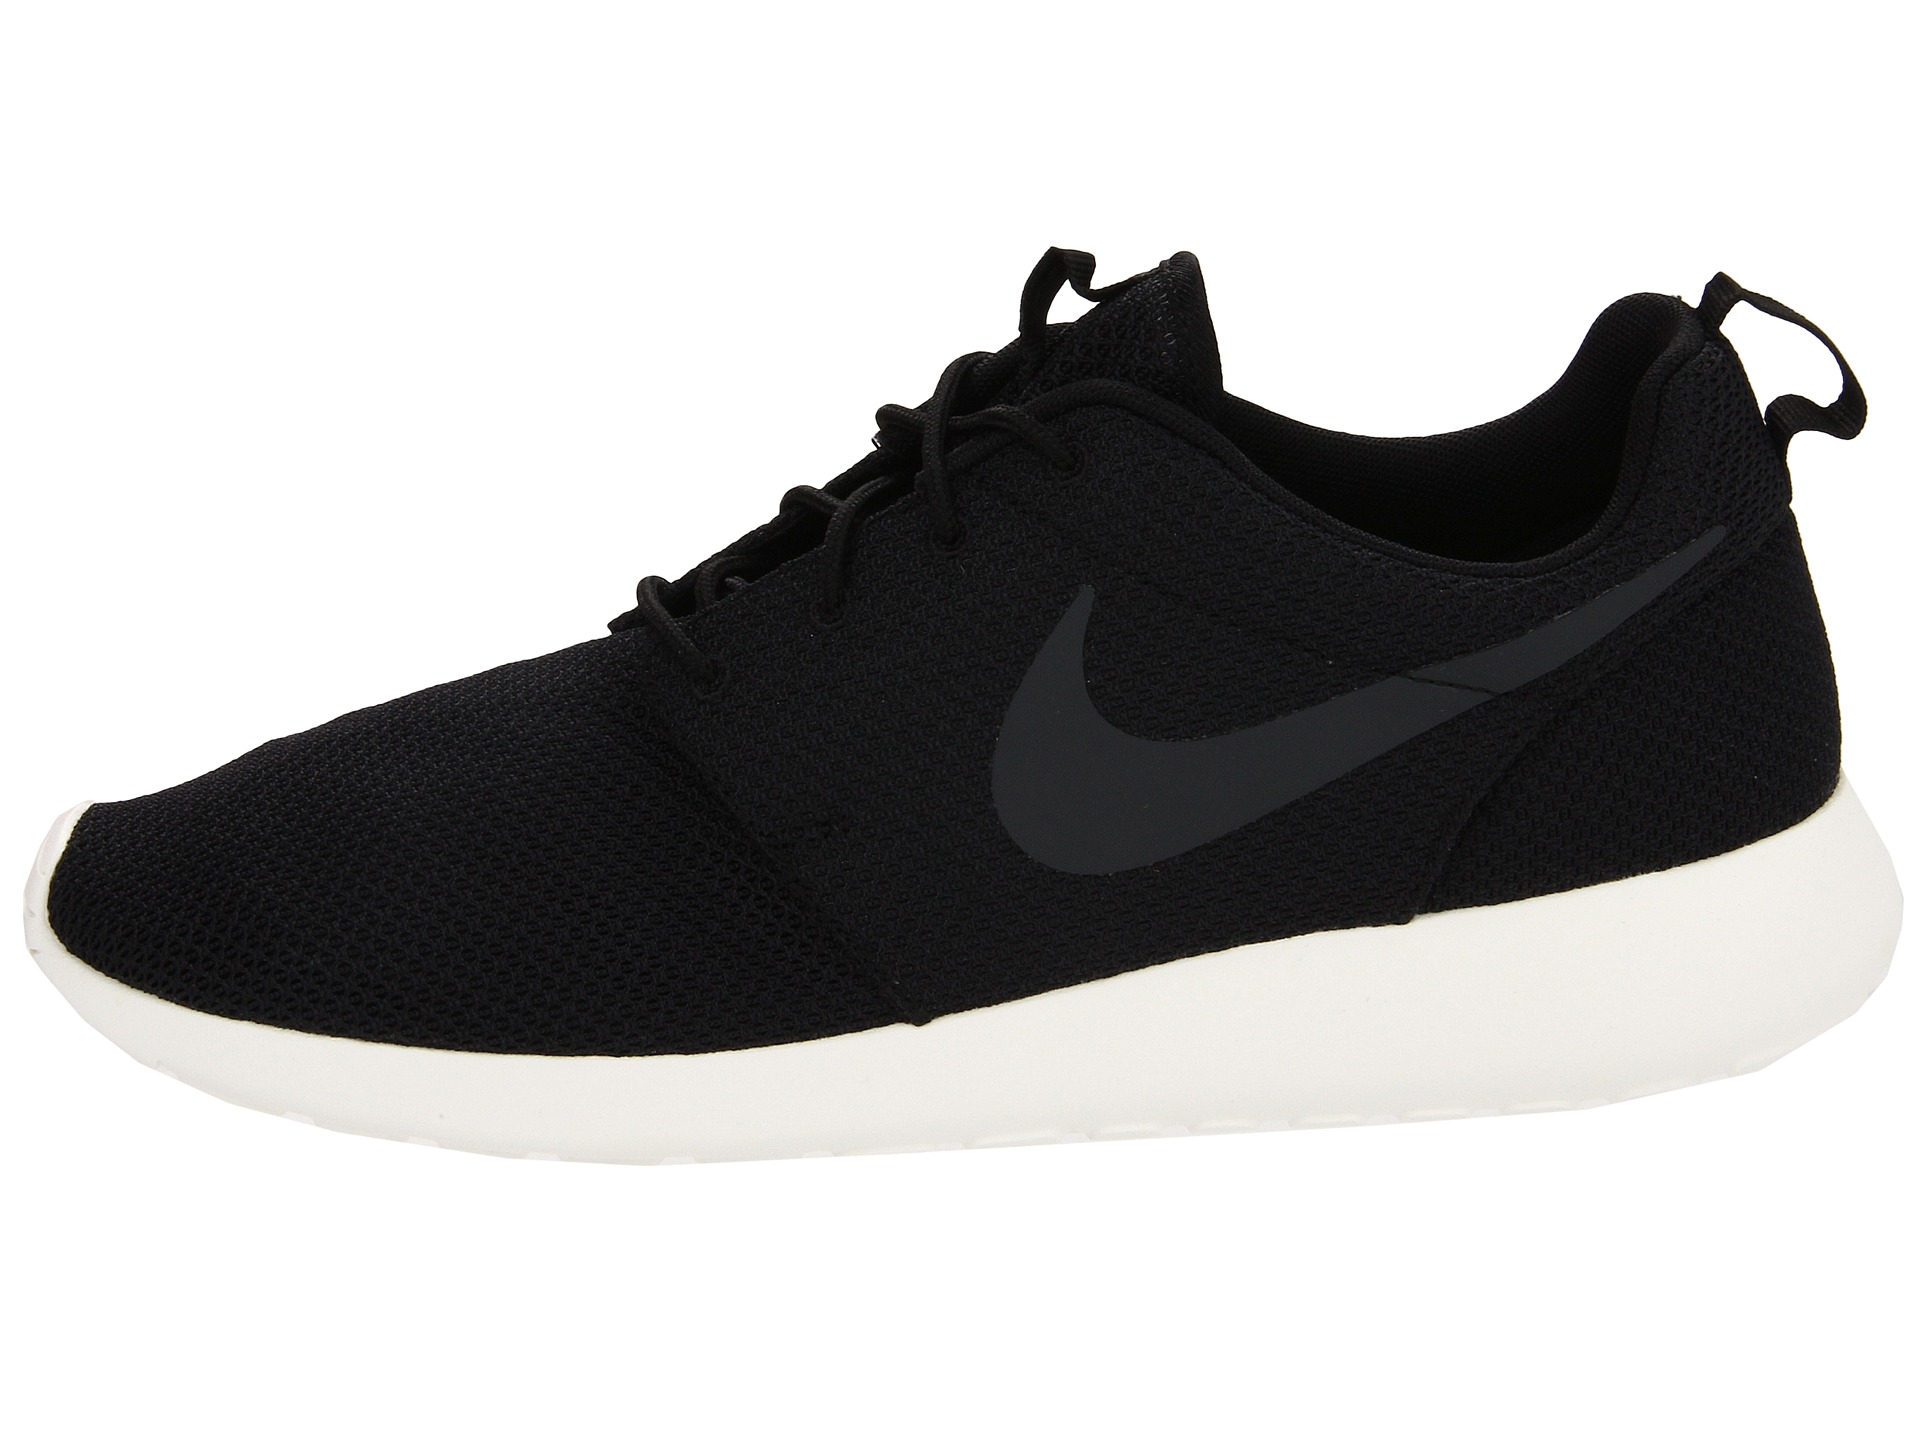 zappos nike roshe womens black and white